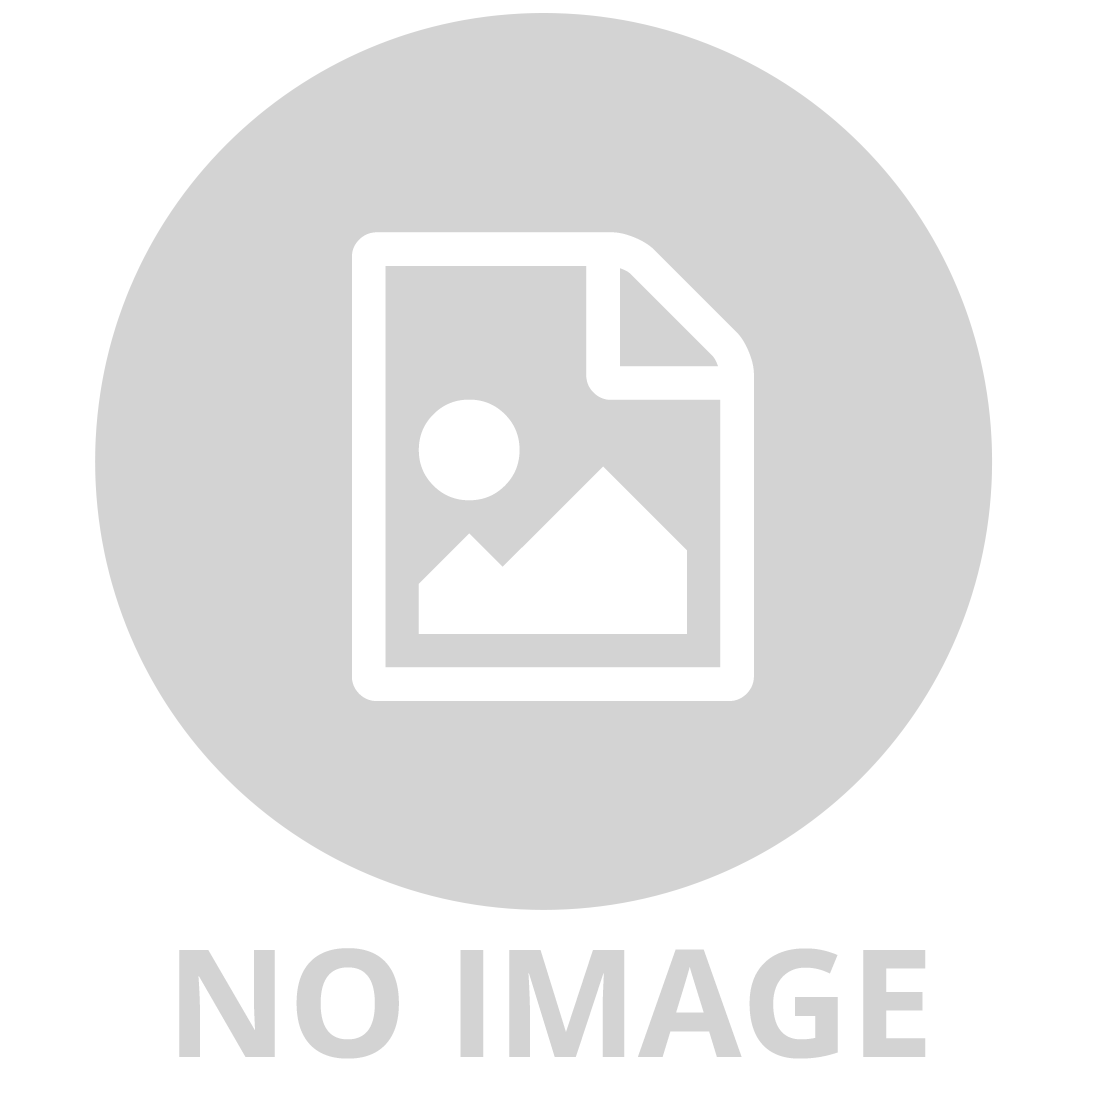 Ryan LED 1 Lgt Ant Black Sp/light 3K A19131